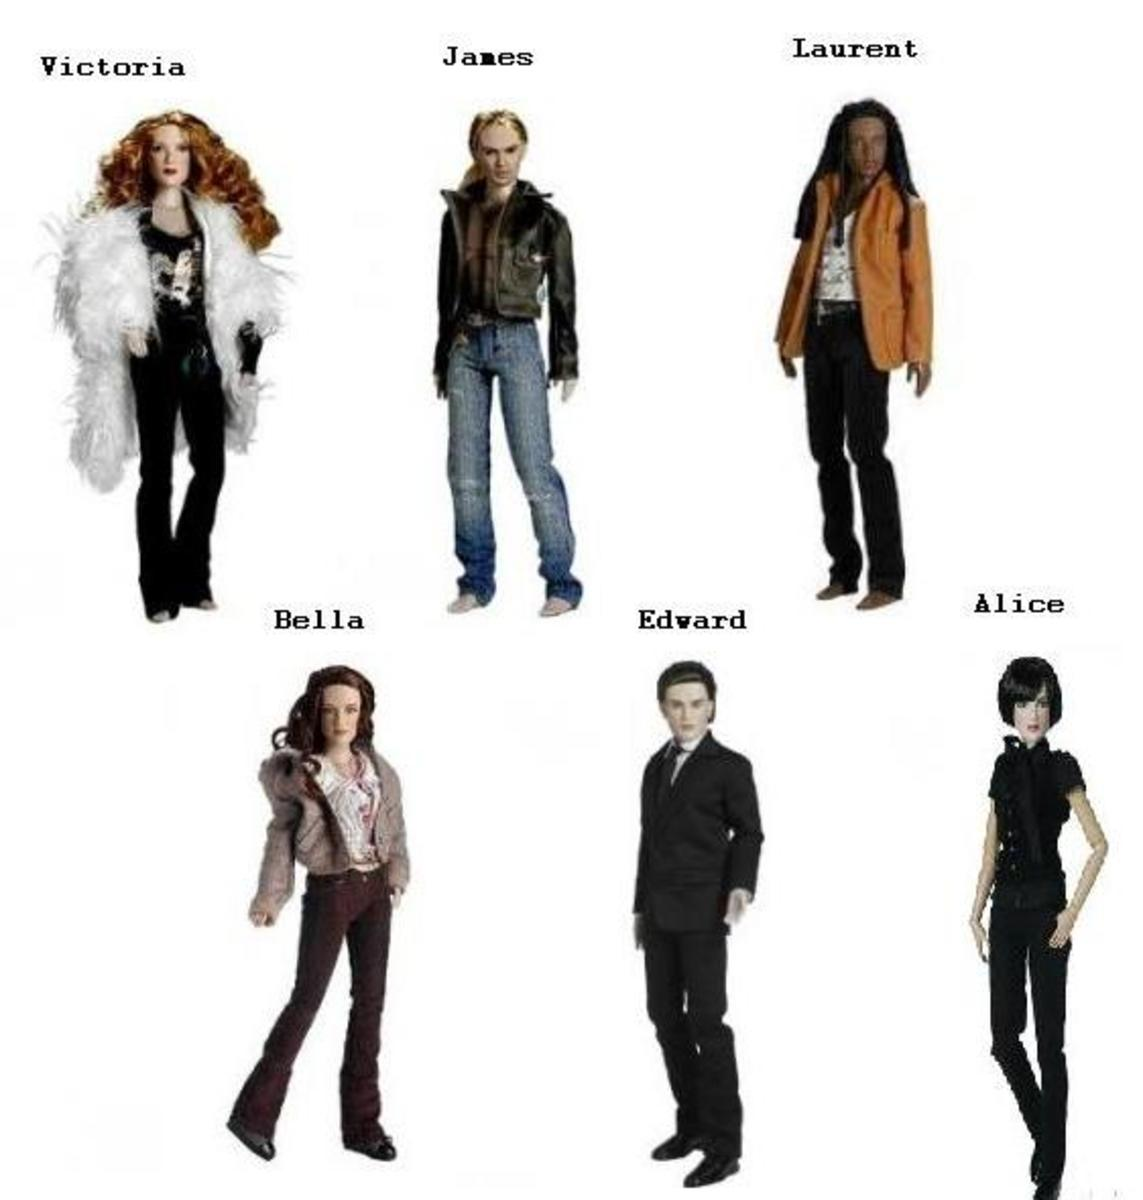 Twilight Tonner Dolls - Victoria, James, Laurent. Bella, Edward and Alice